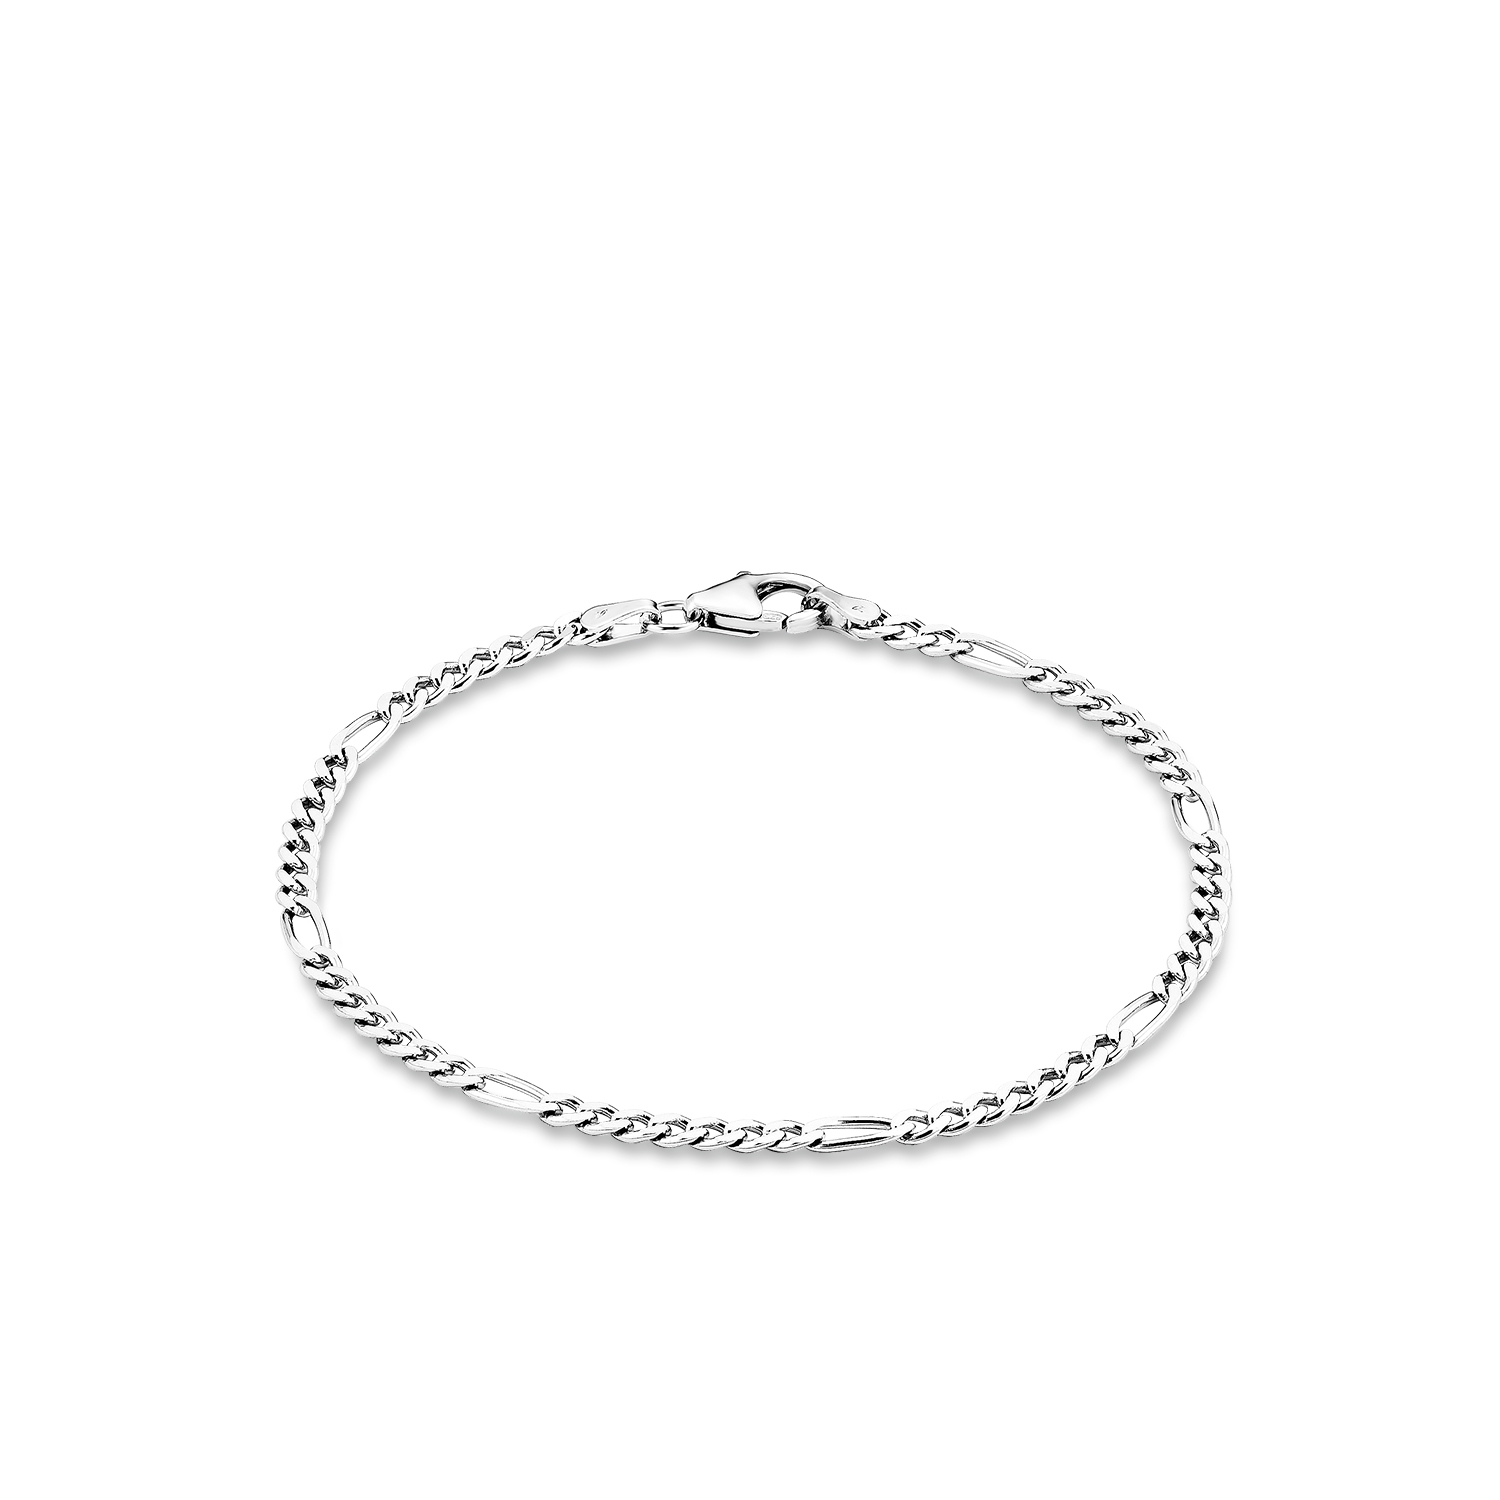 Armband Unisex, Sterling Silber 925